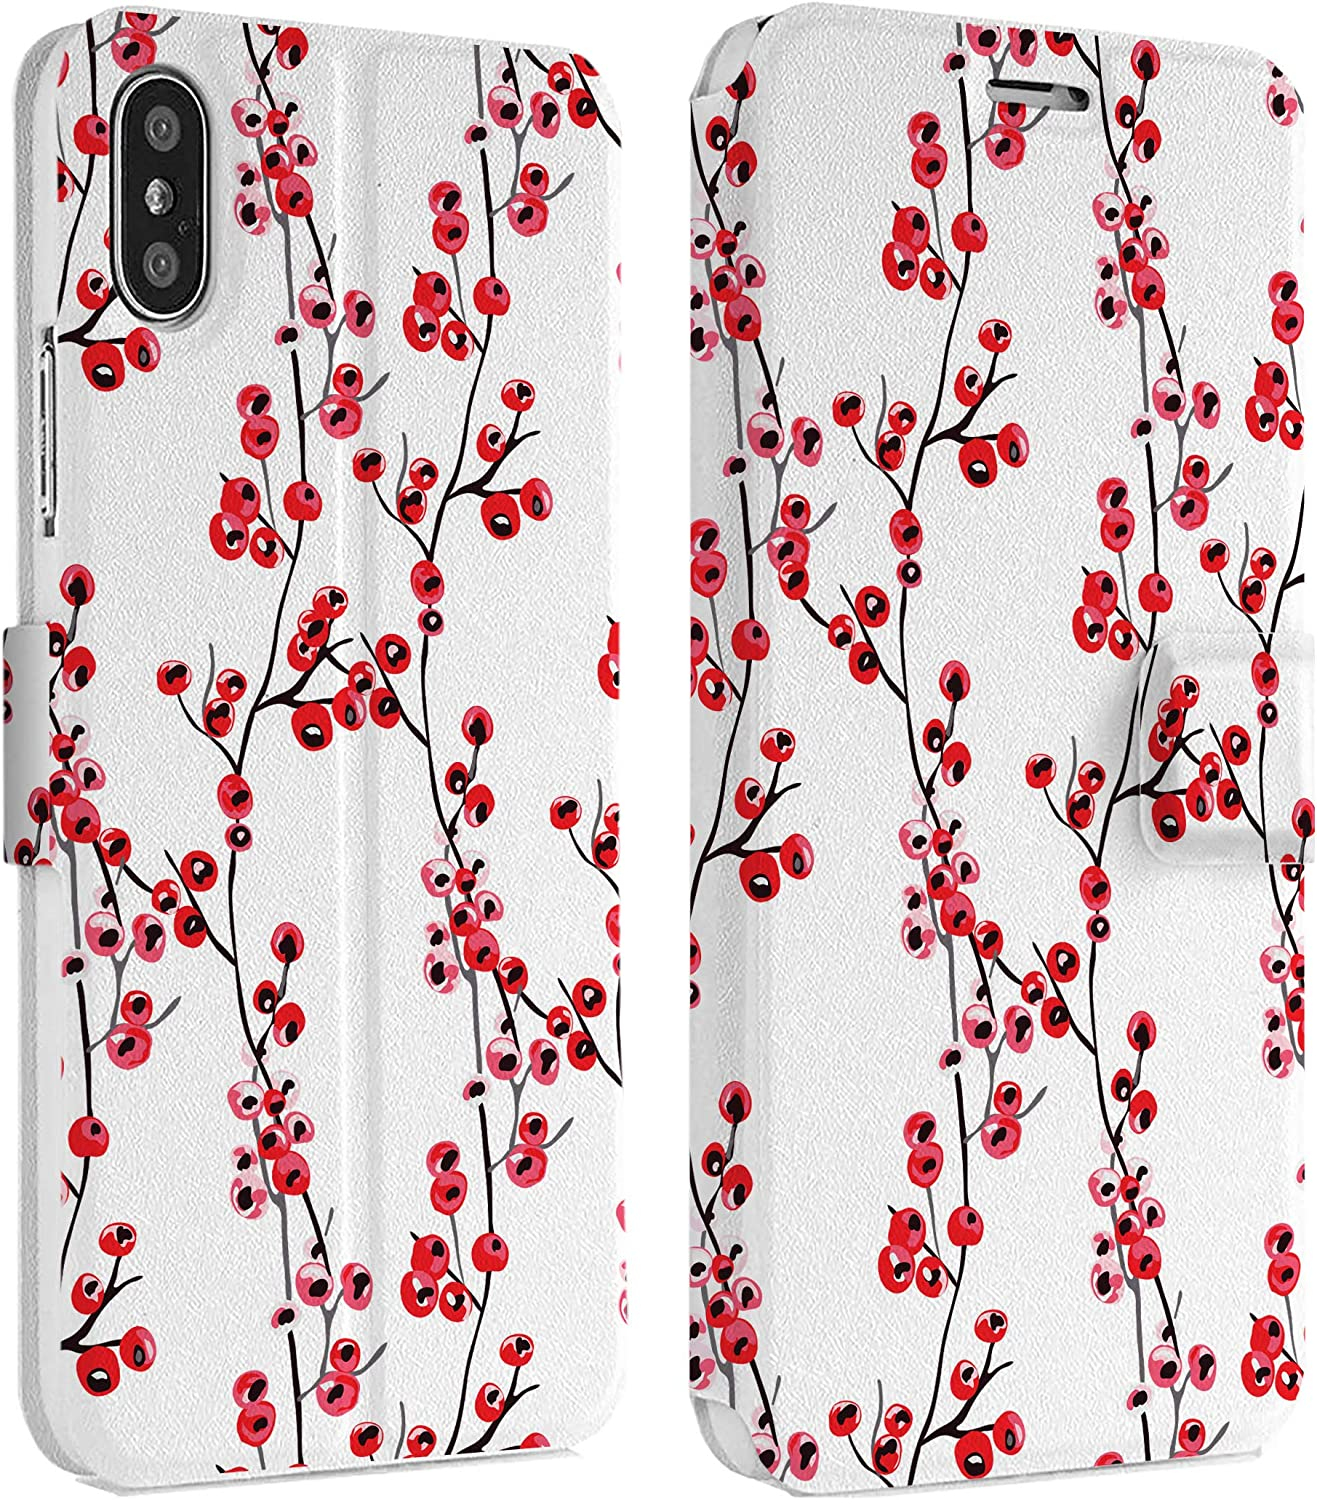 Wonder Wild Almond Blossoms IPhone Wallet Case X//Xs Xs Max Xr 7//8 Plus 6//6s Plus Card Holder Accessories Smart Flip Hard Design Protection Cover Van Gogh Famous Painting Art Museum Retro Floral New